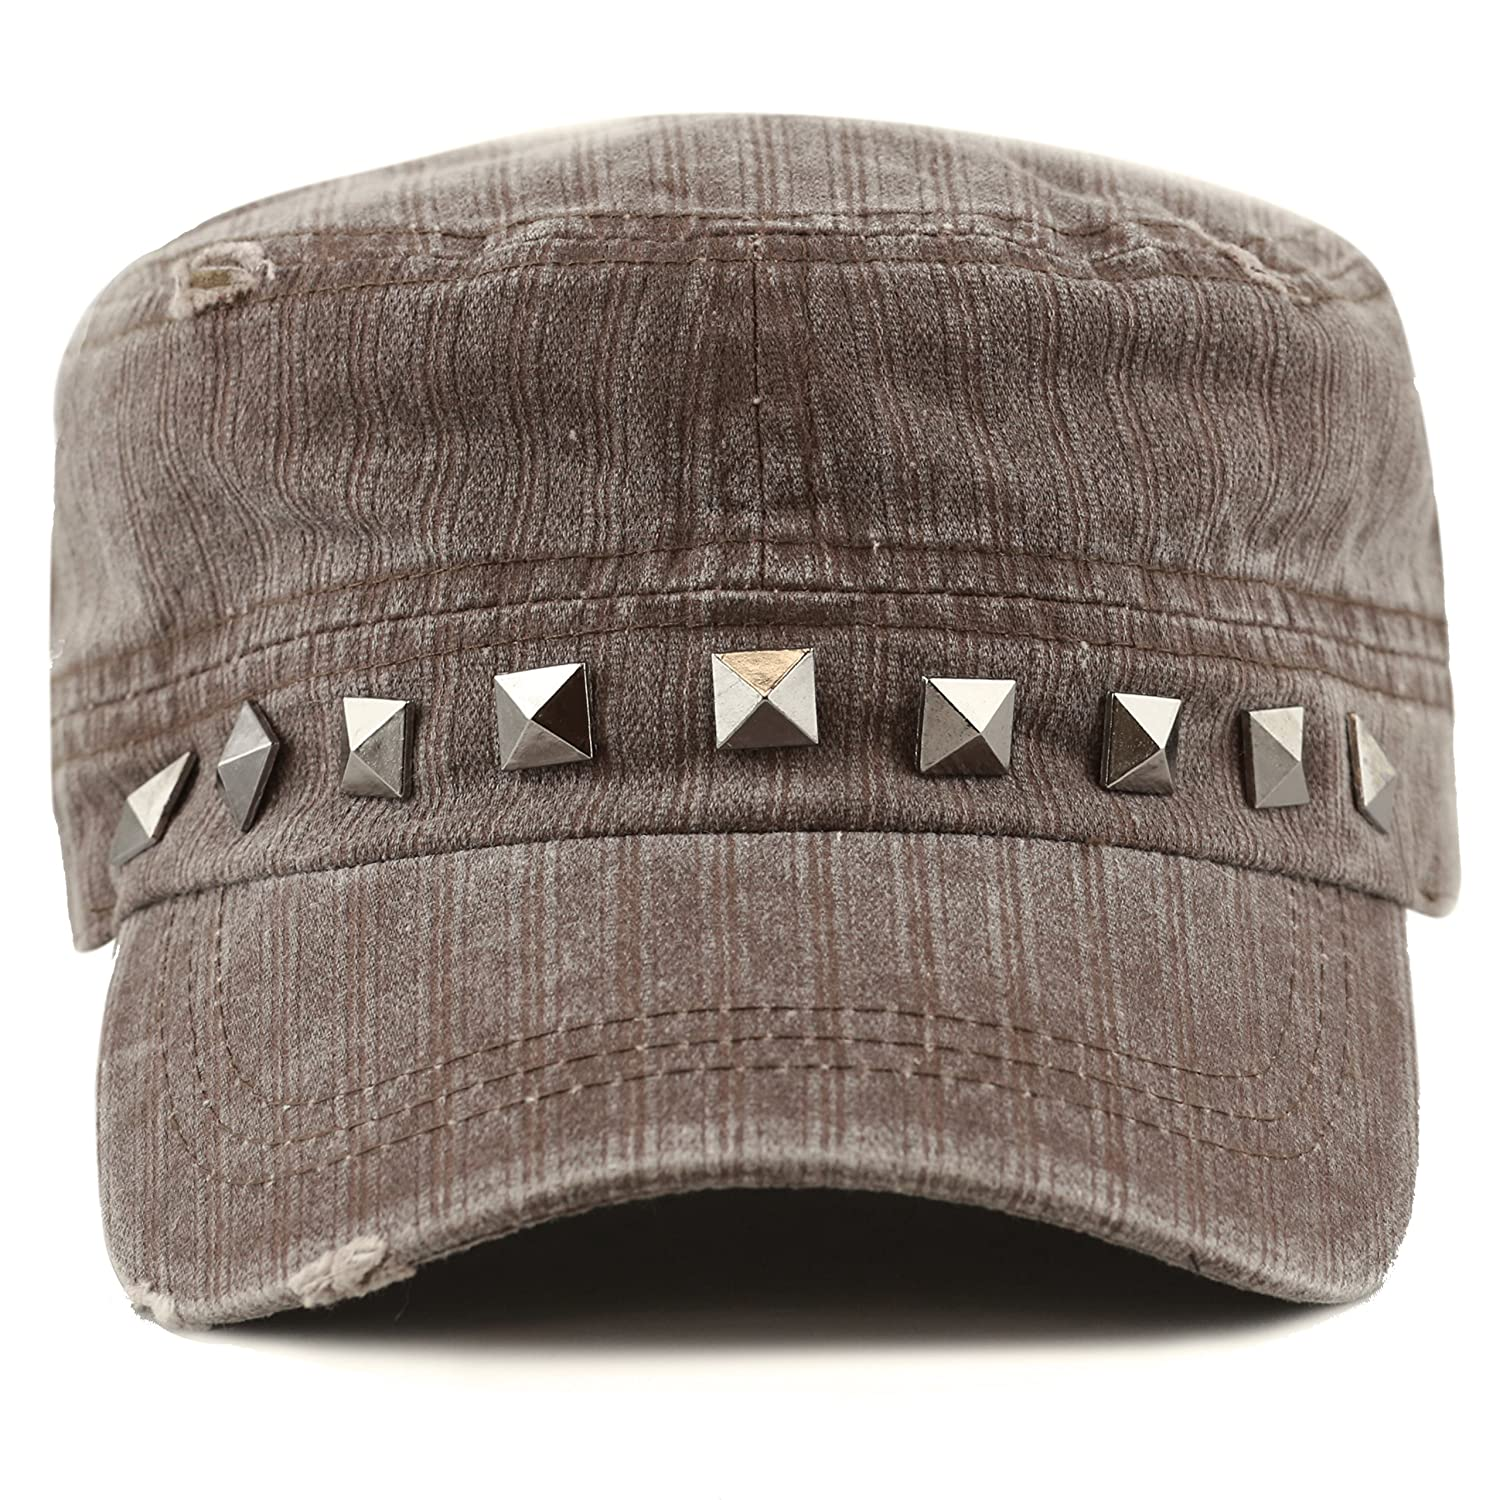 THE HAT DEPOT Women s Distressed Cotton Cadet Cap with Studs (Brown) at  Amazon Women s Clothing store  87b2a3b1176